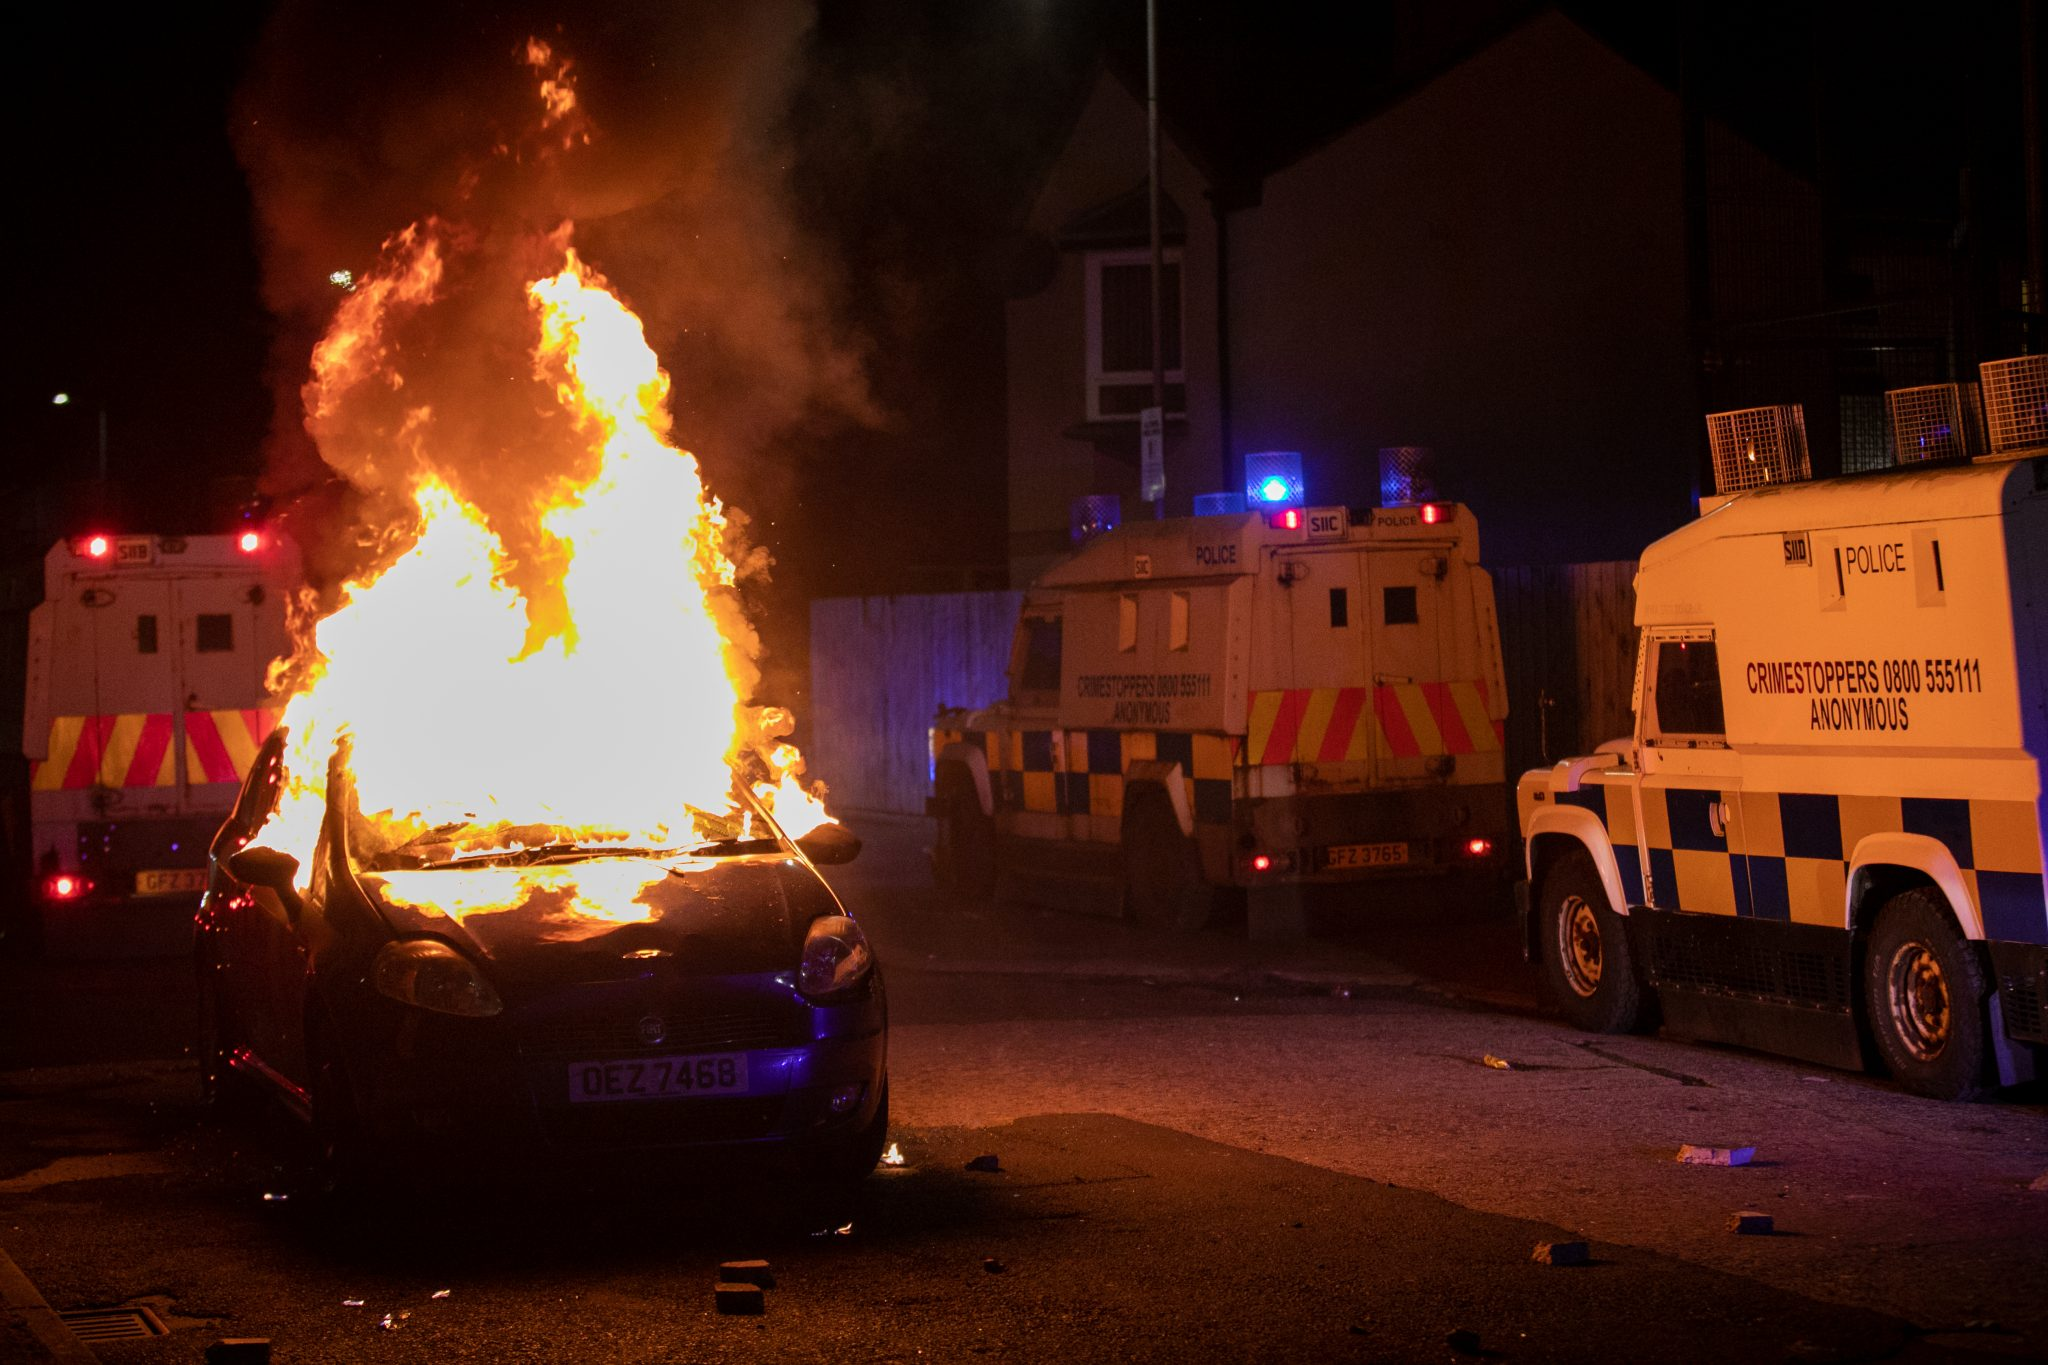 A car burns on the streets of Belfast, surrounded by police riot vans, at night in a residential area